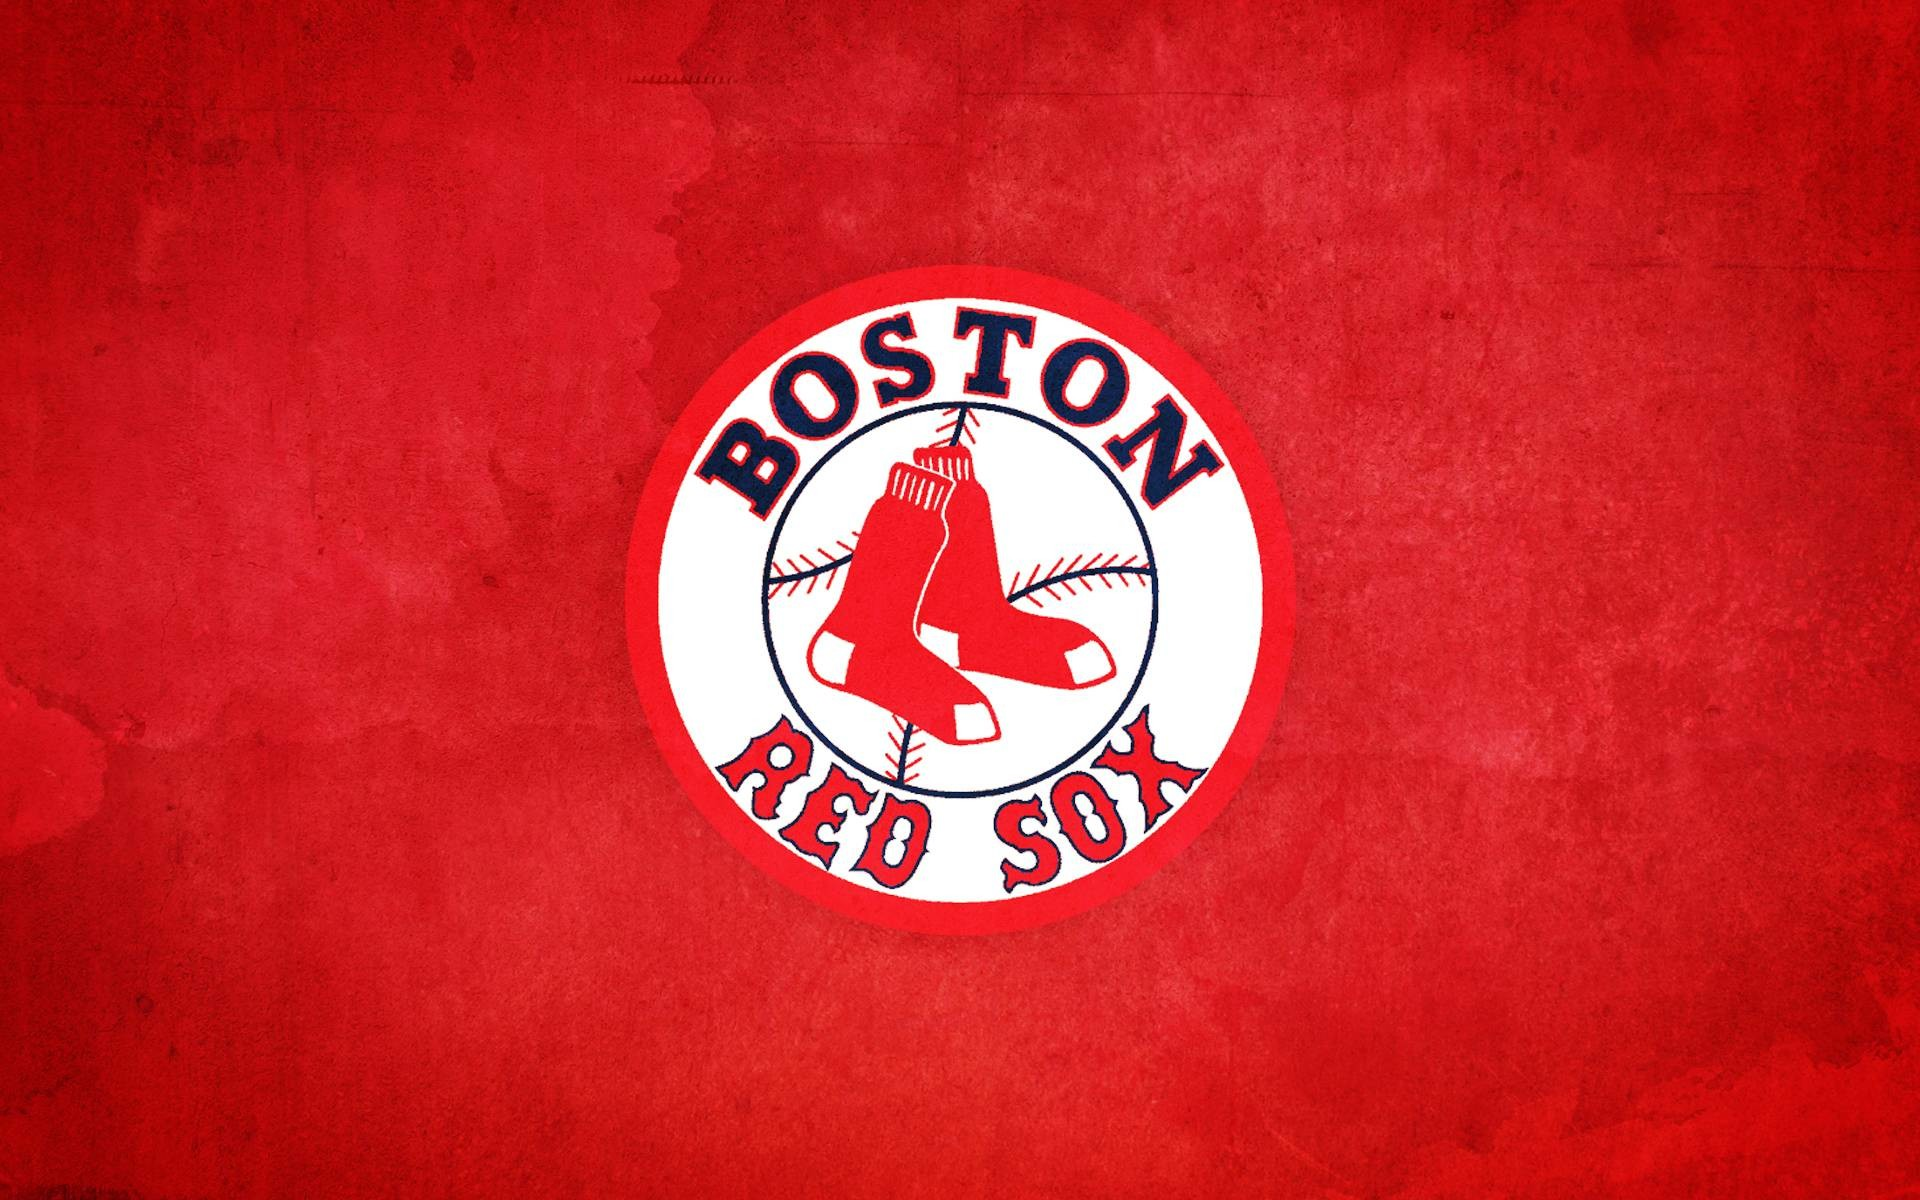 1920x1200 - Boston Red Sox Wallpaper Screensavers 12